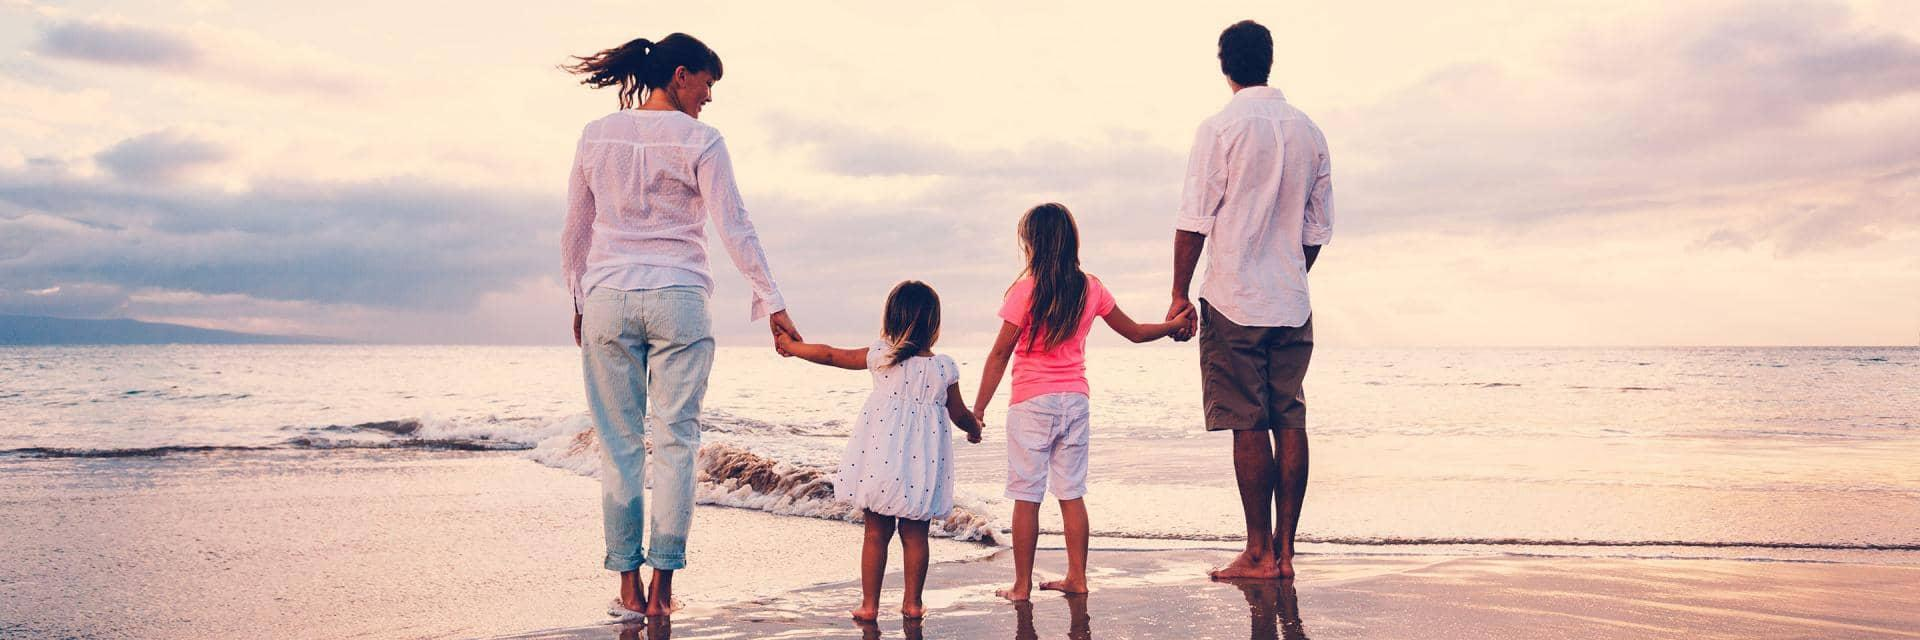 A mum and dad holding the hands of two children on a sandy beach at sunset